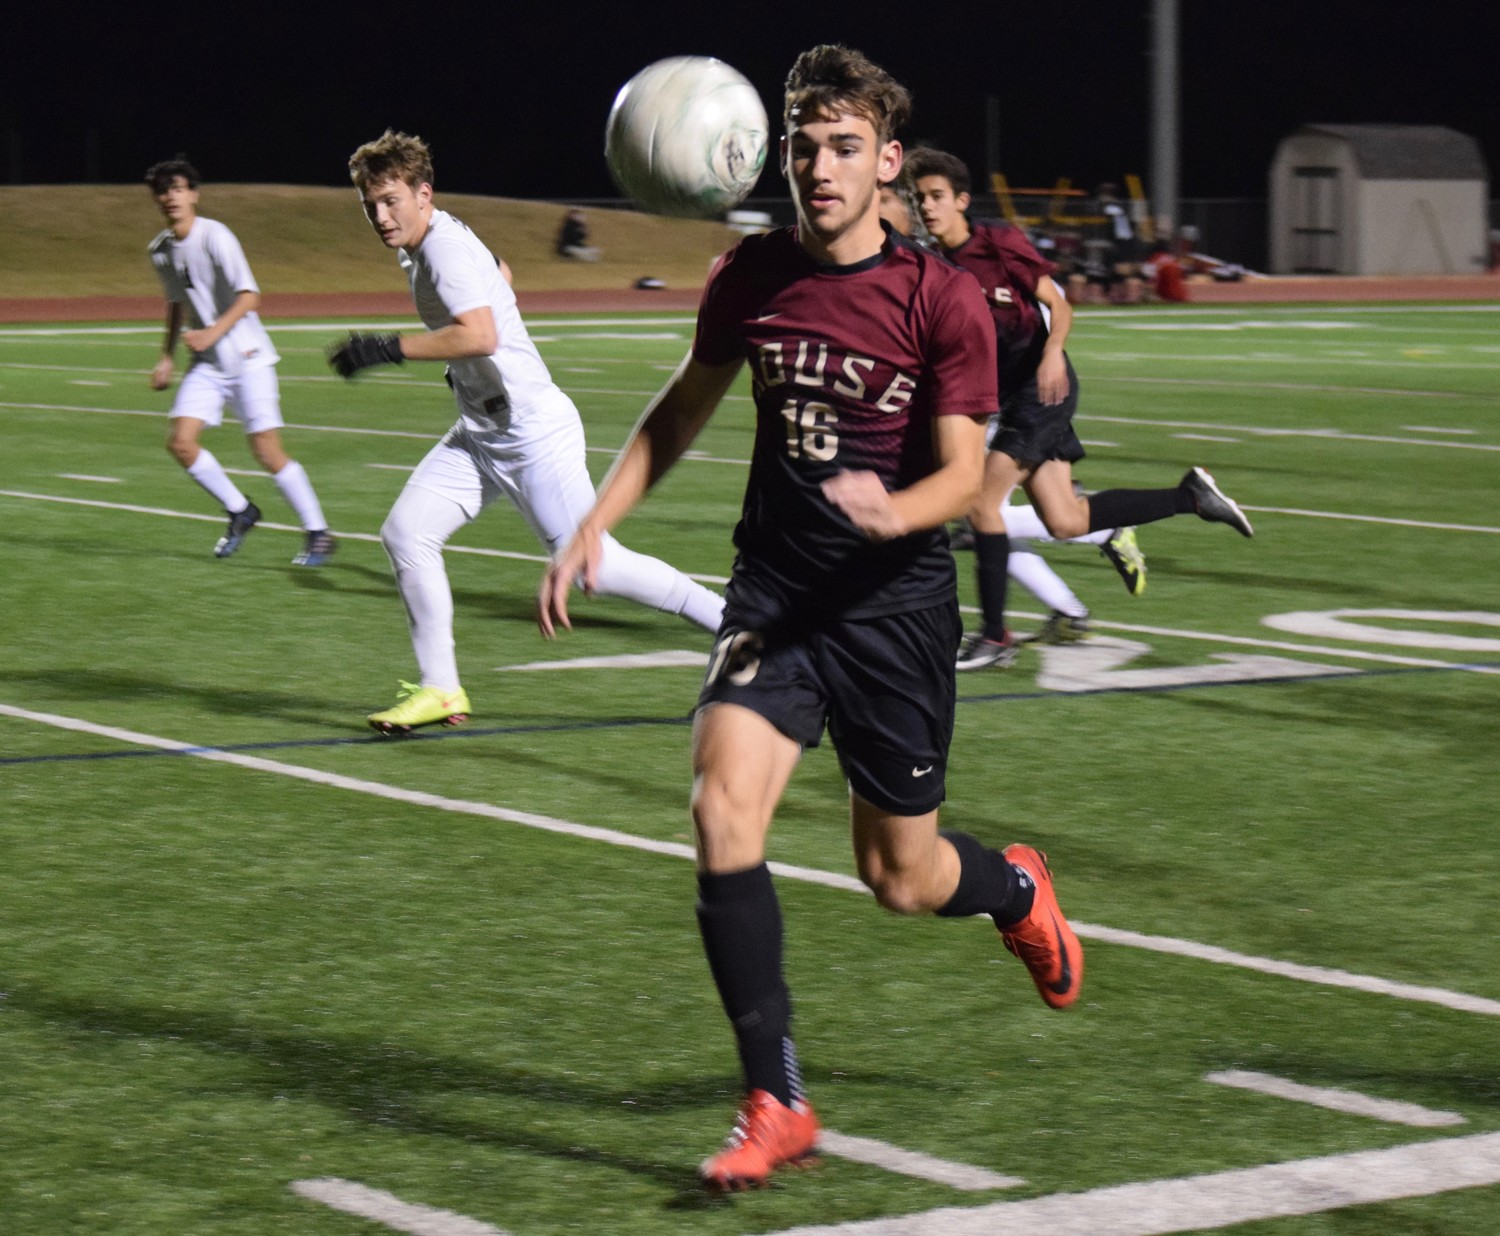 Forward Cohen Reed-Green led the Raiders with 14 goals last season and was a first-team all-district selection.